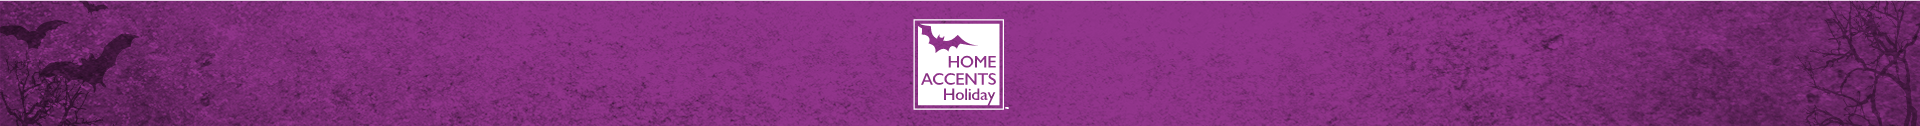 Home Accents halloween themed banner